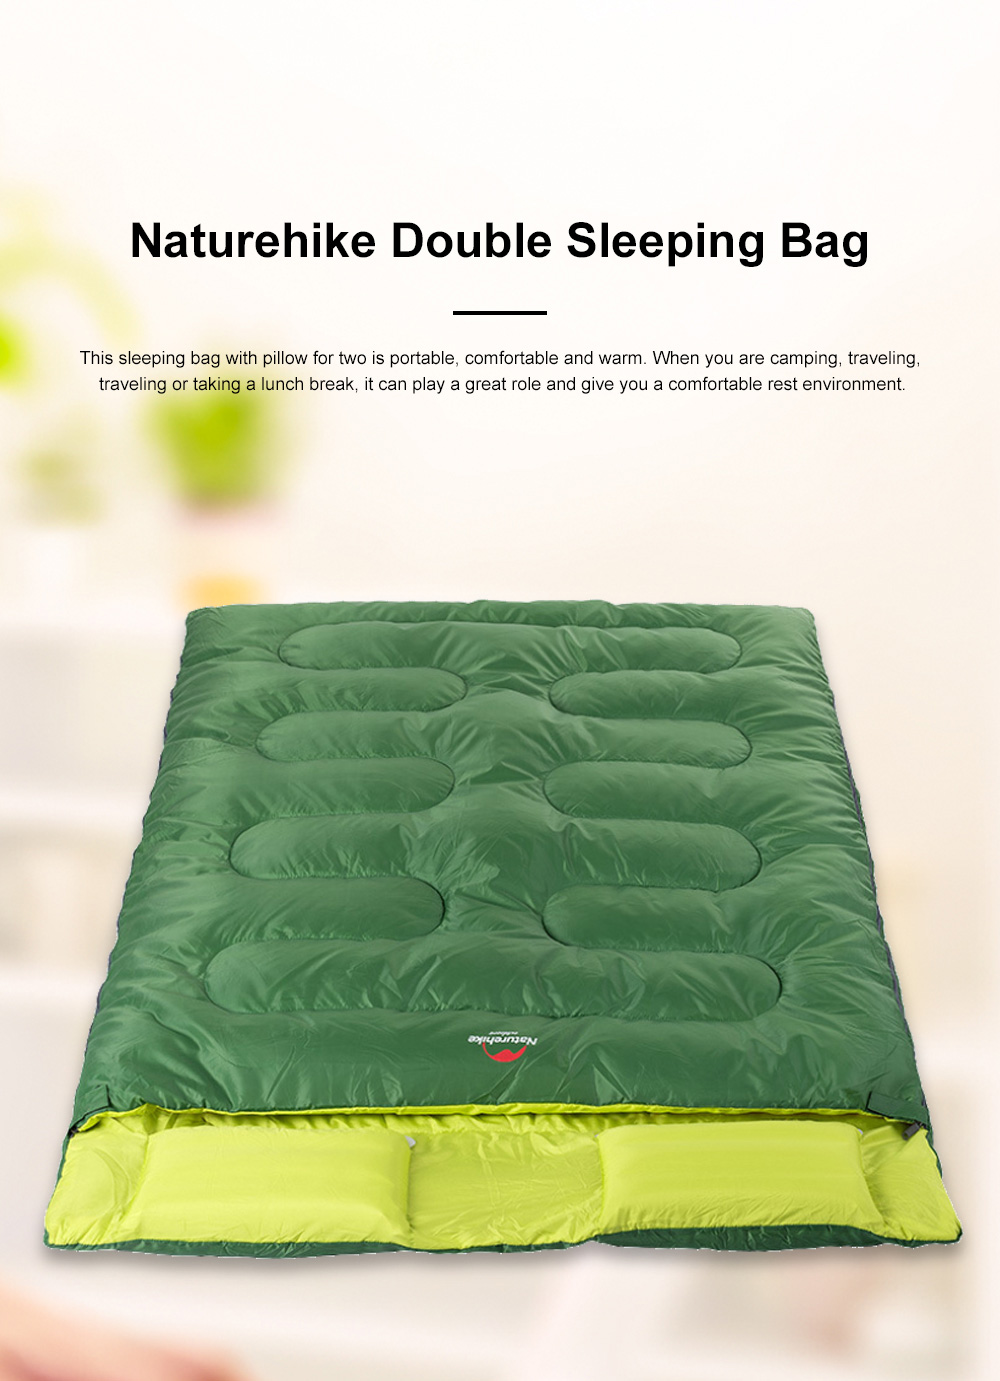 Naturehike Sleeping Bag for Two Adult Outdoor Camping Tent Cotton Sleeping Bag for Lunch Break in Four Seasons Office 0